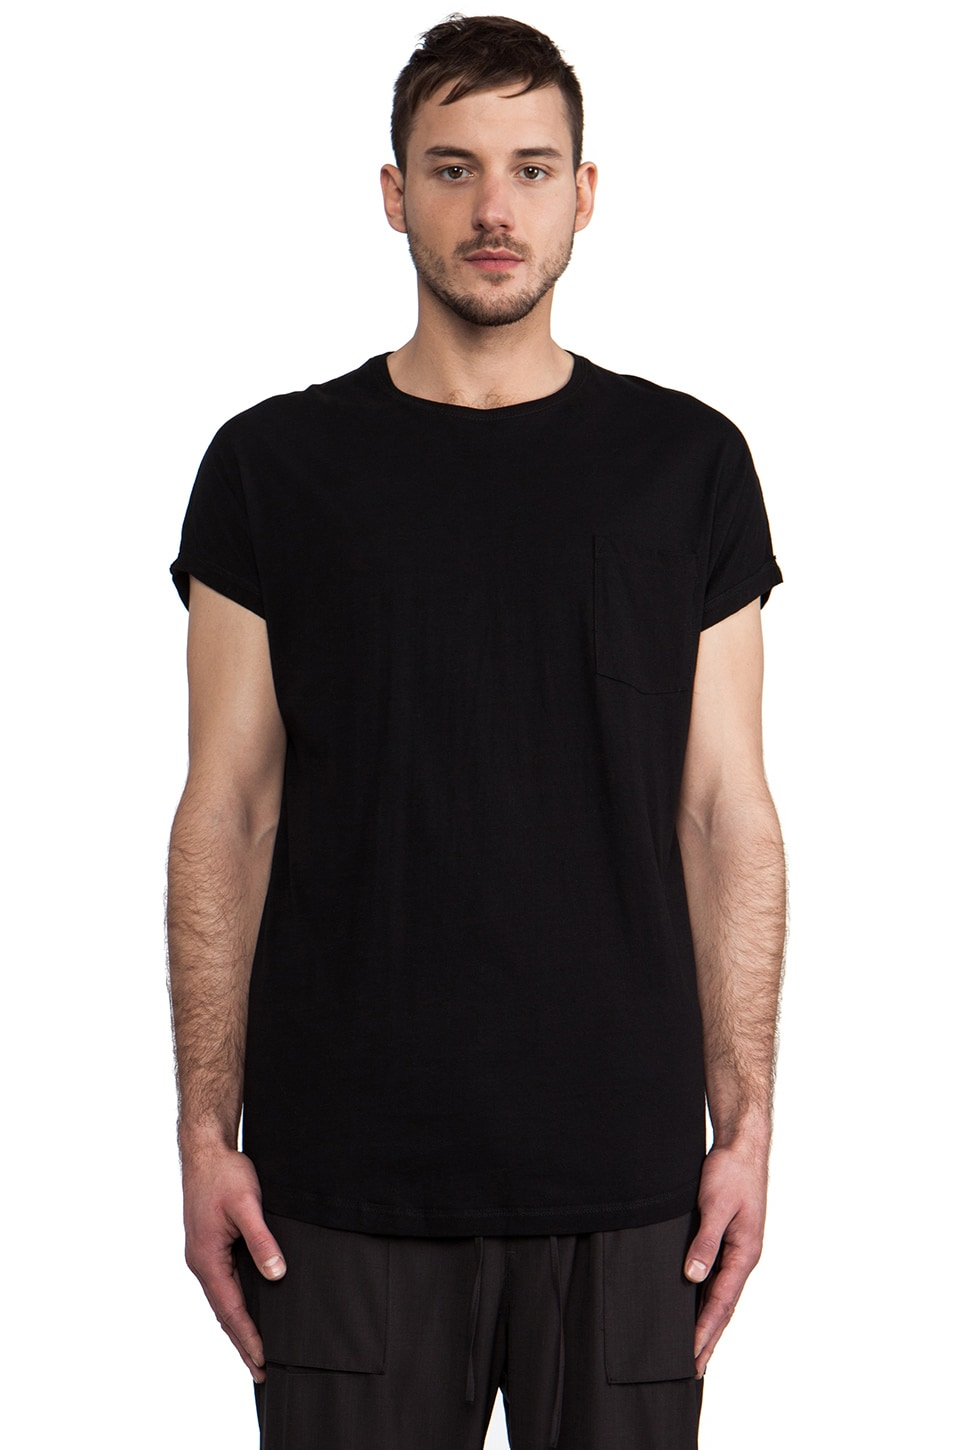 CHAPTER Dimitri T-Shirt in Black